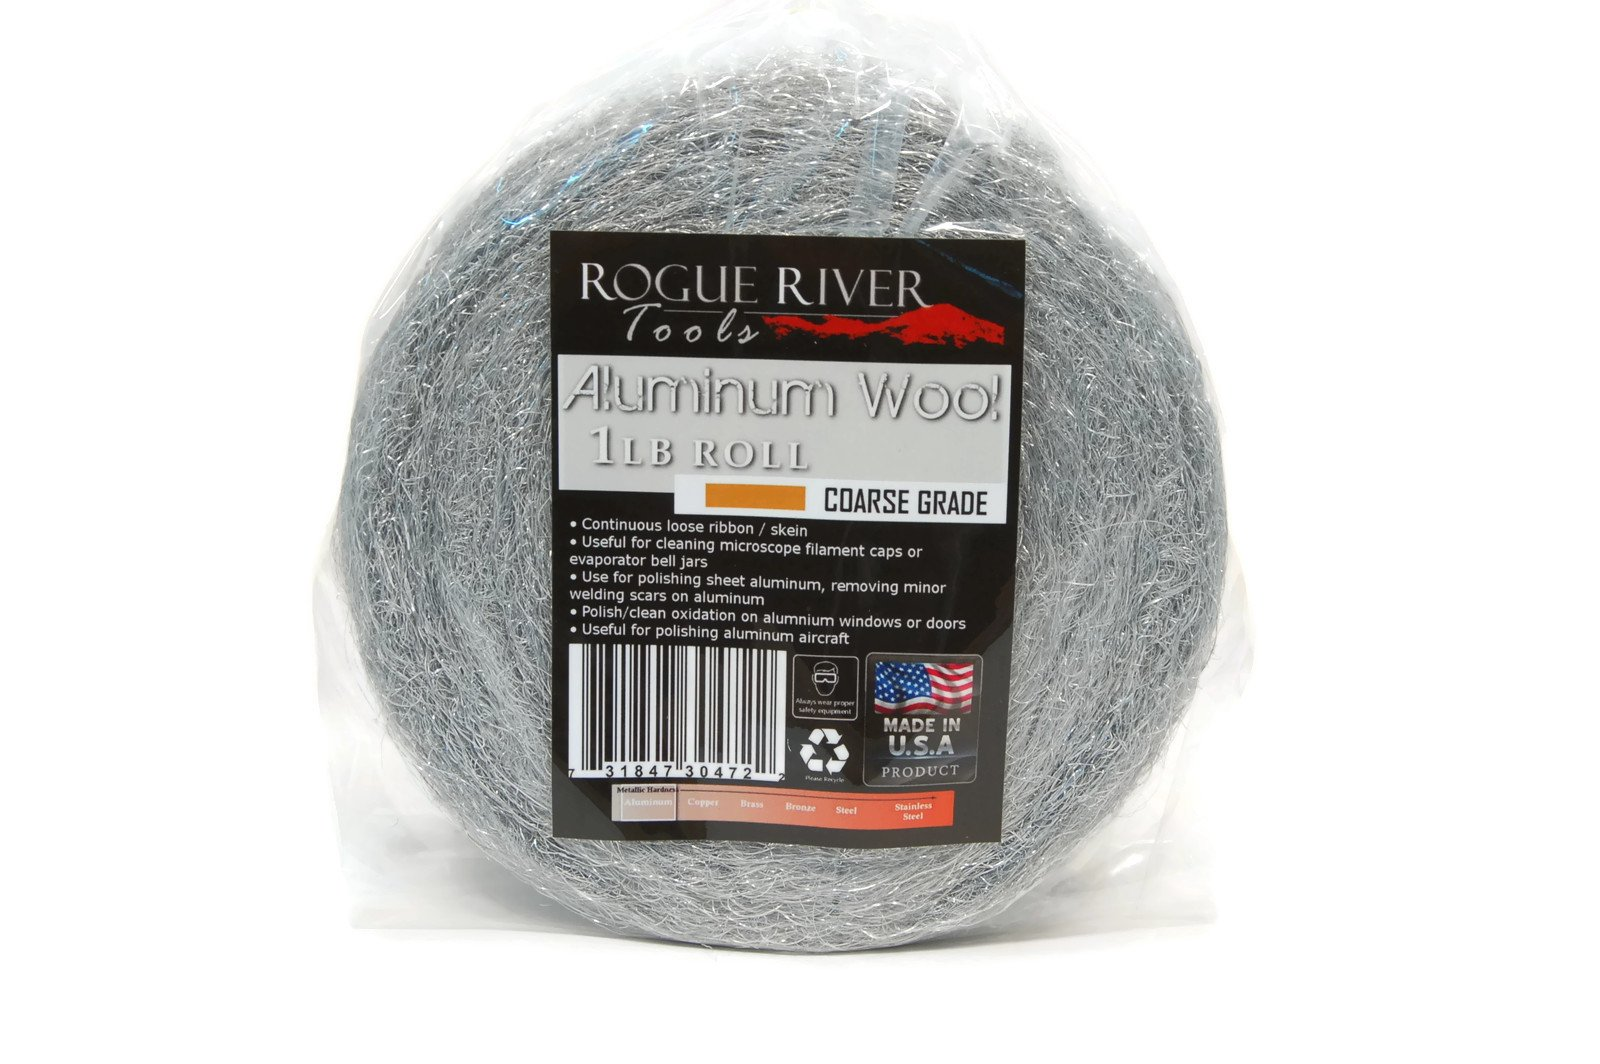 Rogue River Tools Aluminum Wool 1lb Roll - Coarse by Rogue River Tools